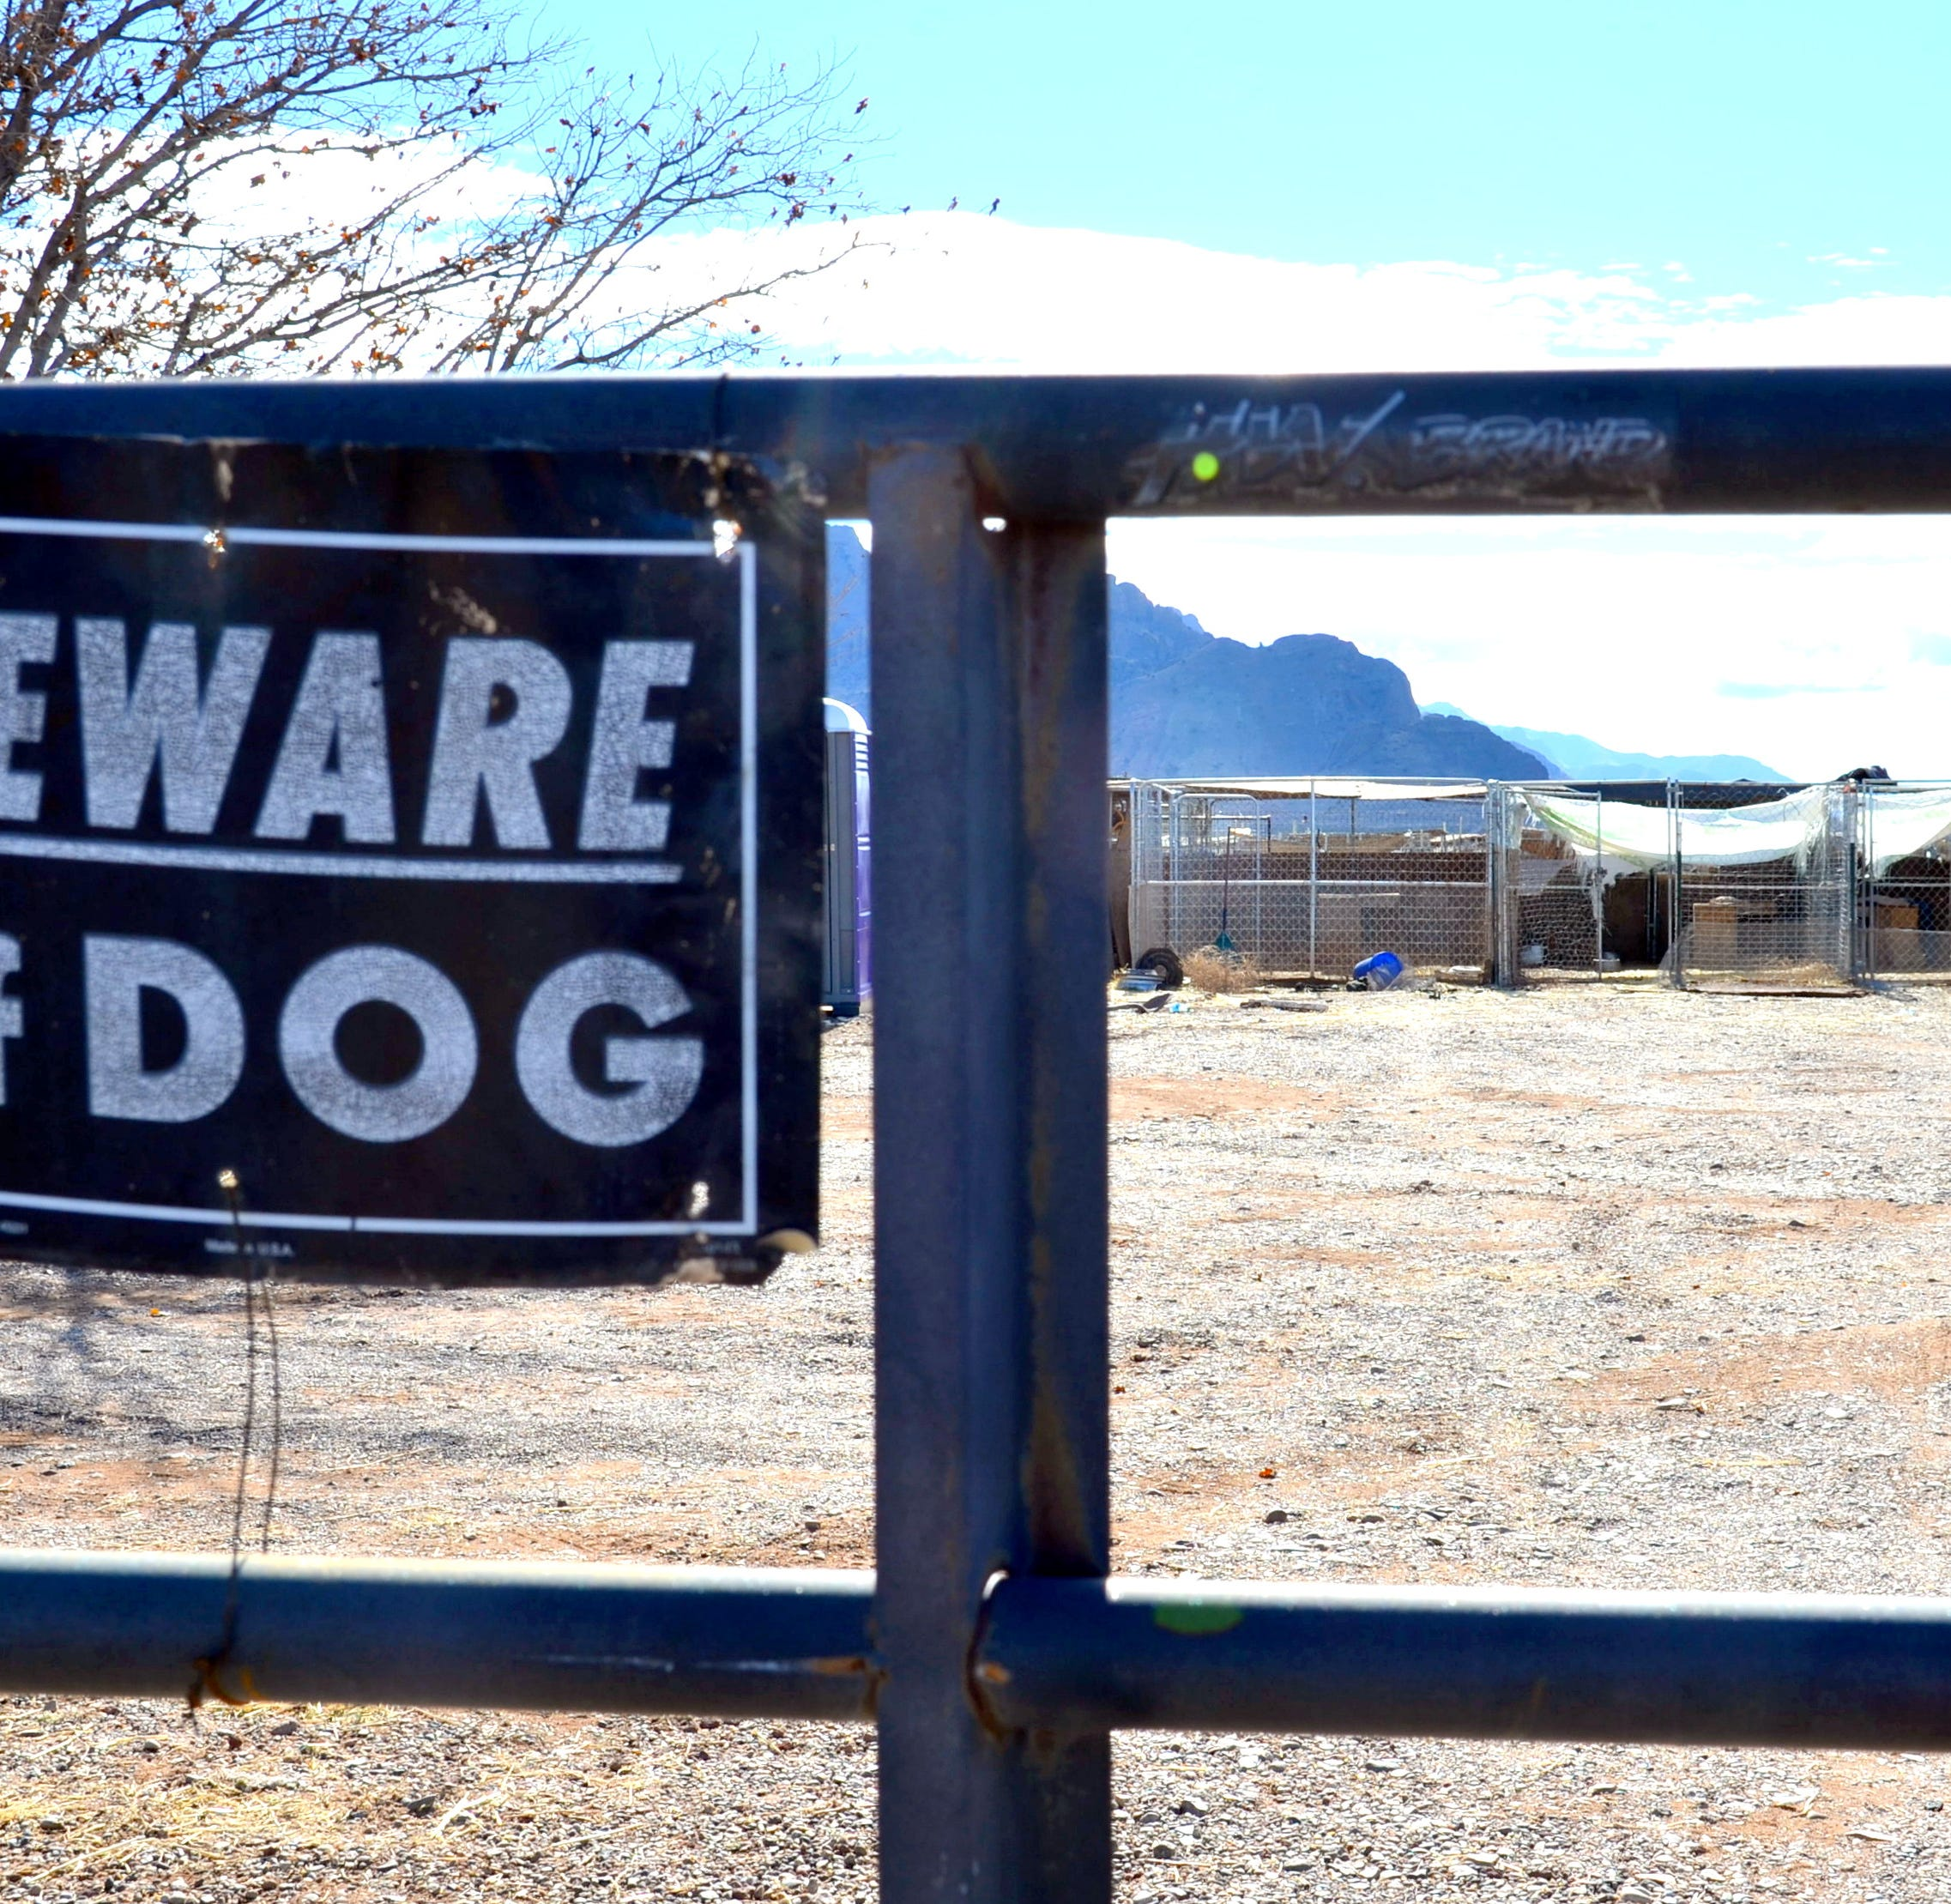 Ruff Ruff Animal Sanctuary operator voluntarily dismisses case against former land owner